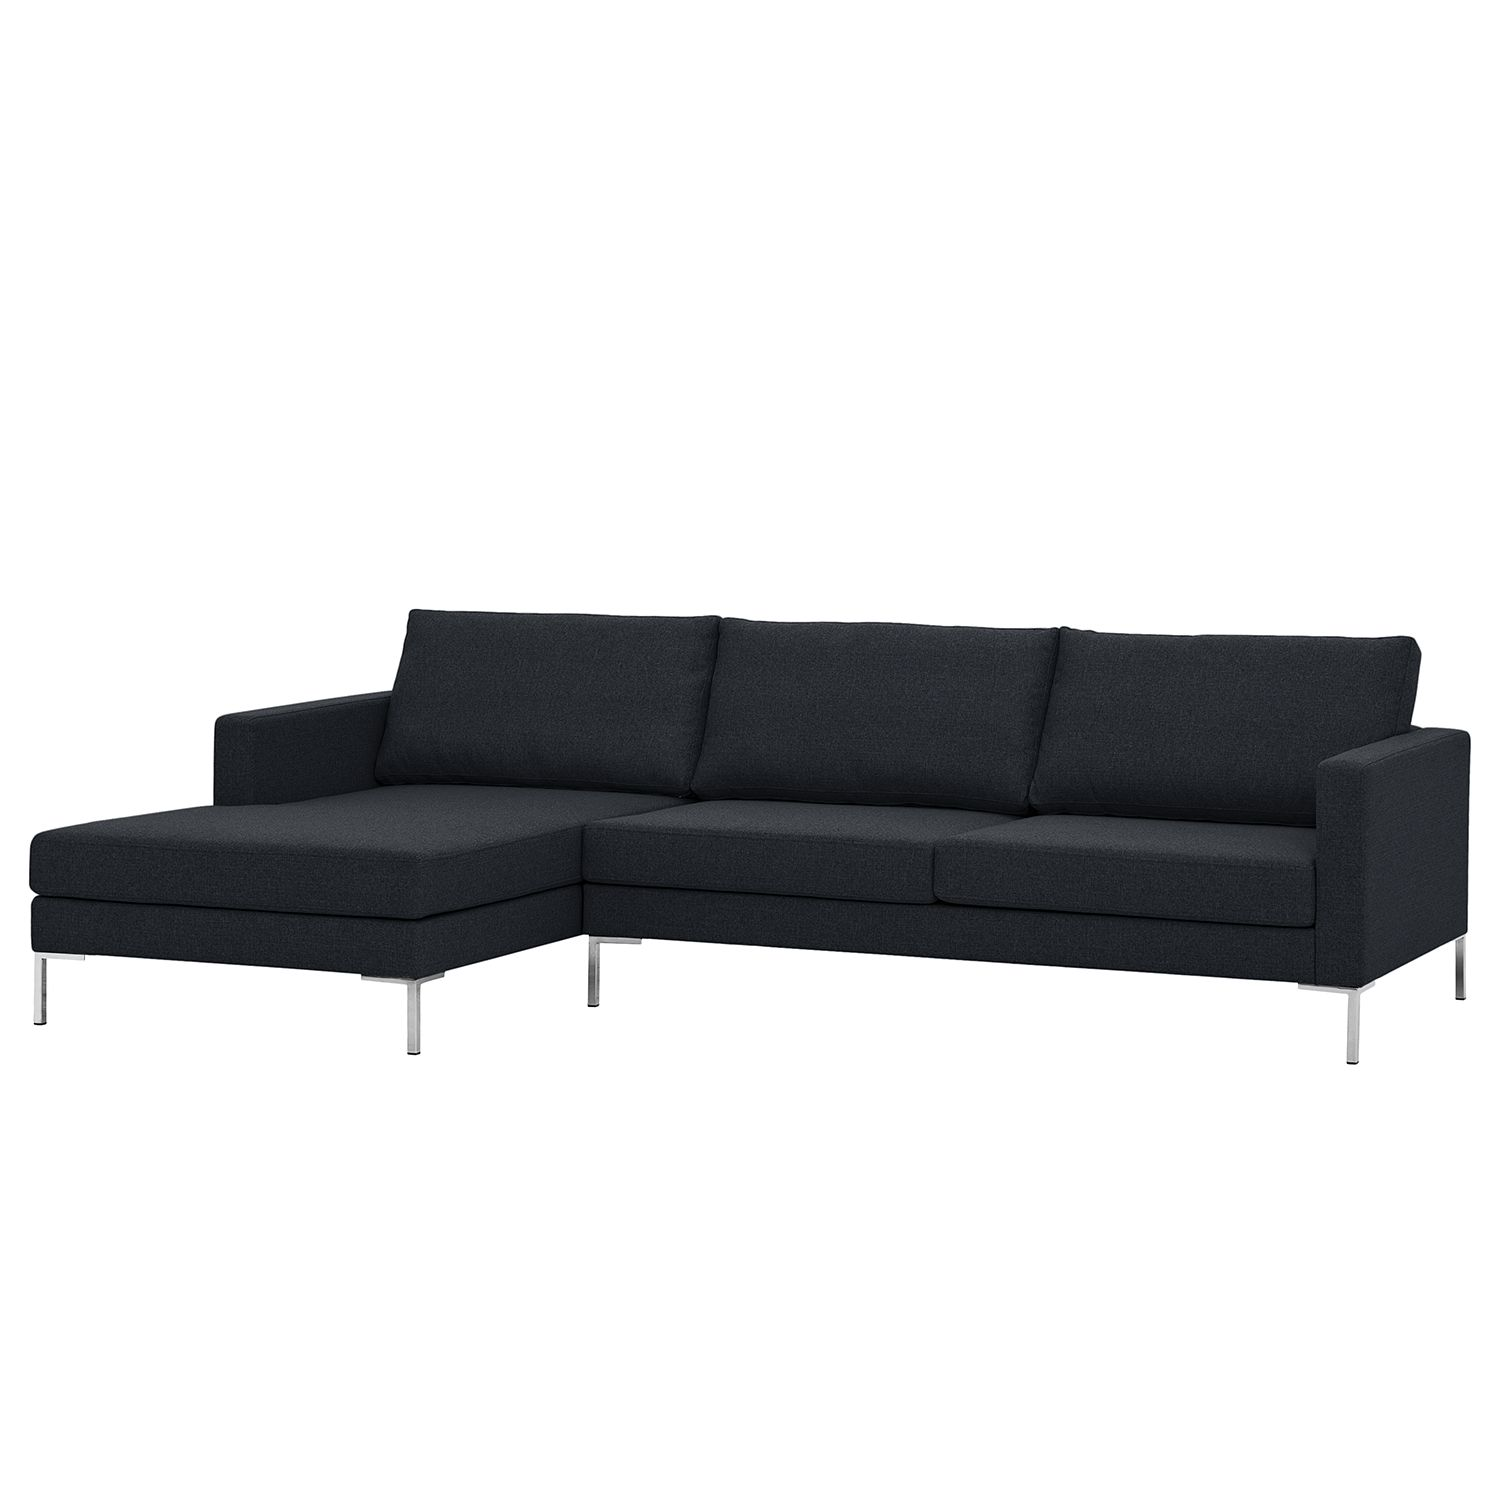 Ecksofa Portobello I - Webstoff - Longchair davorstehend links - Anthrazit - 251 cm, Red Living